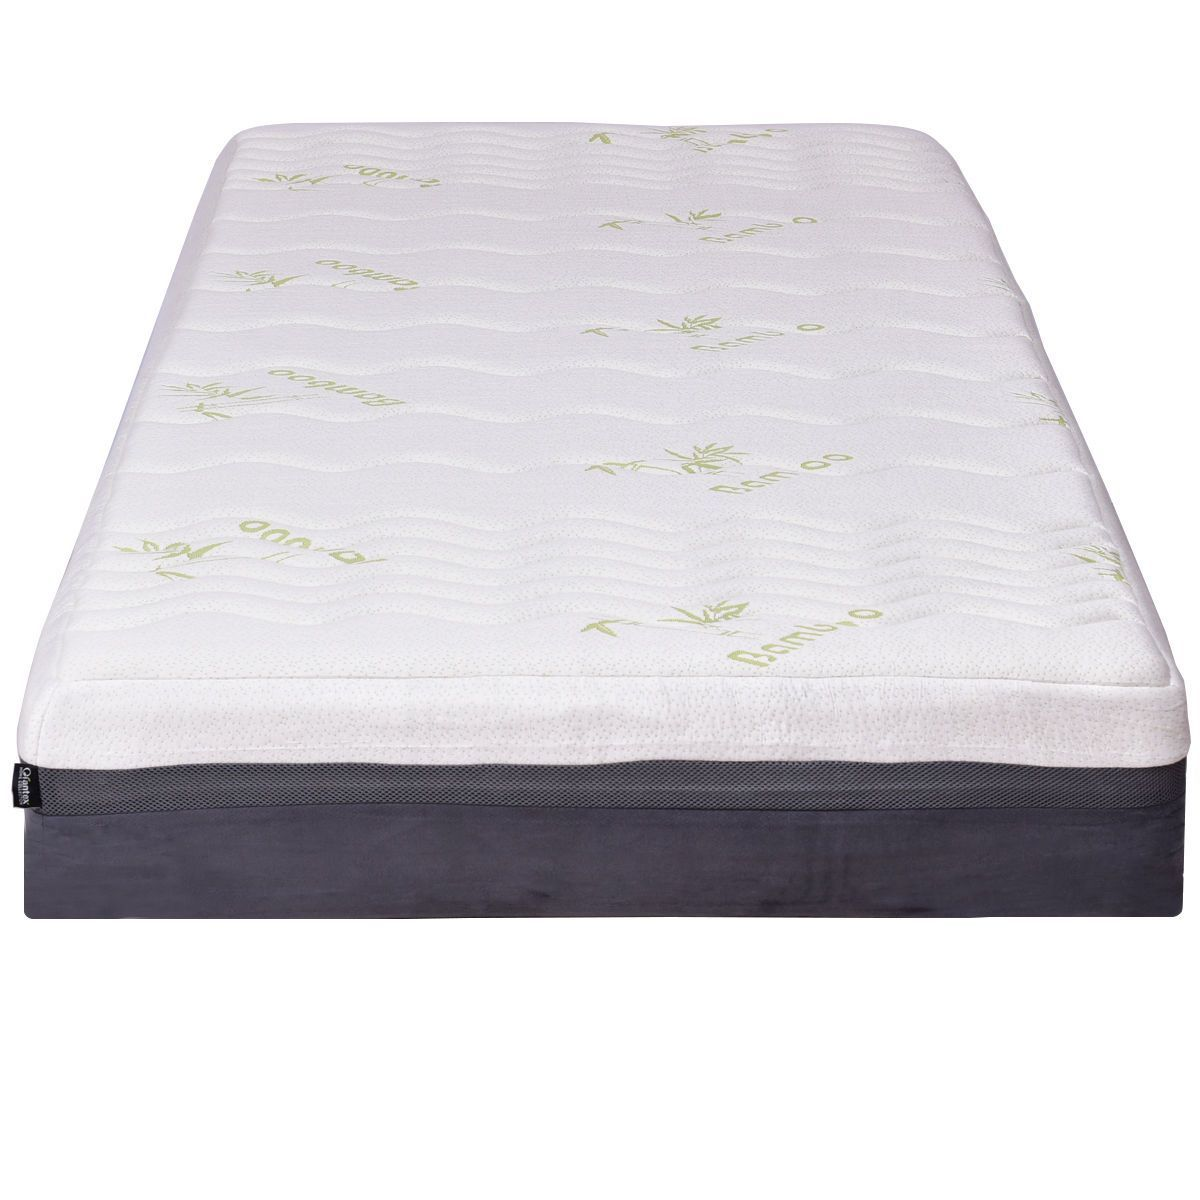 King Size 10 Bamboo Fiber Cover Memory Foam Mattress ม ร ปภาพ